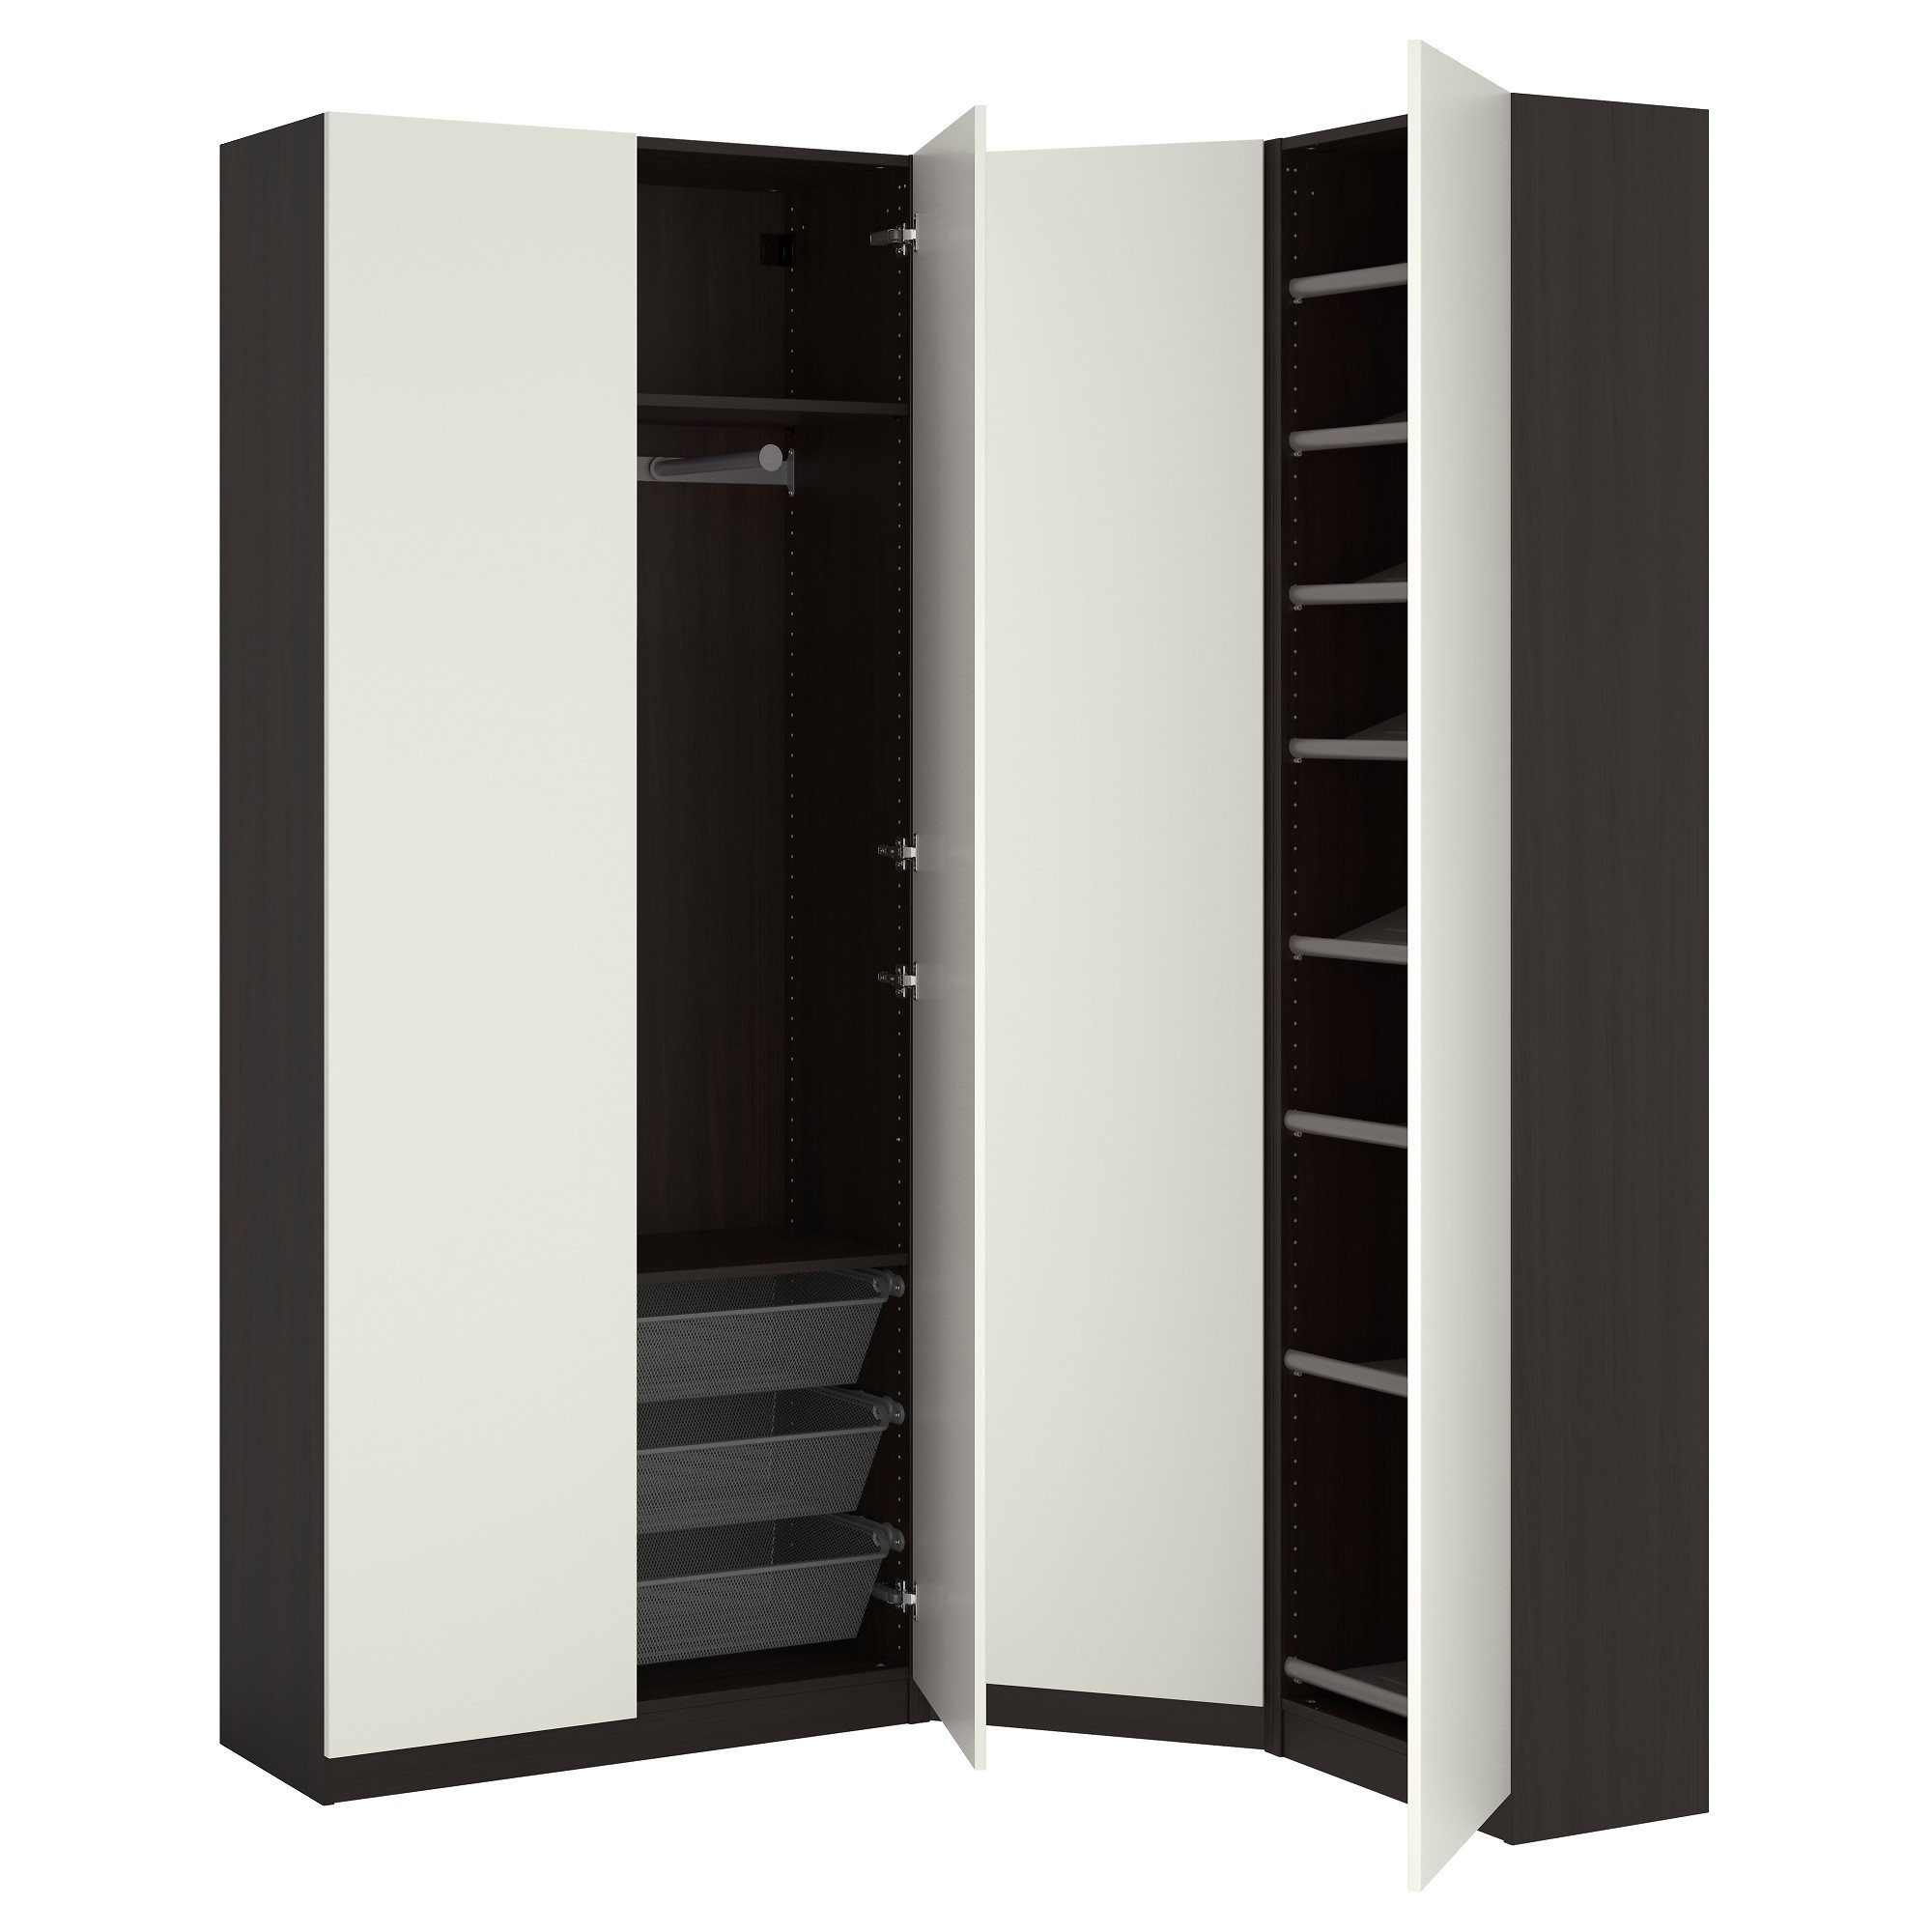 armoire d 39 angle chambre ikea armoire id es de d coration de maison w0bbld7l8q. Black Bedroom Furniture Sets. Home Design Ideas